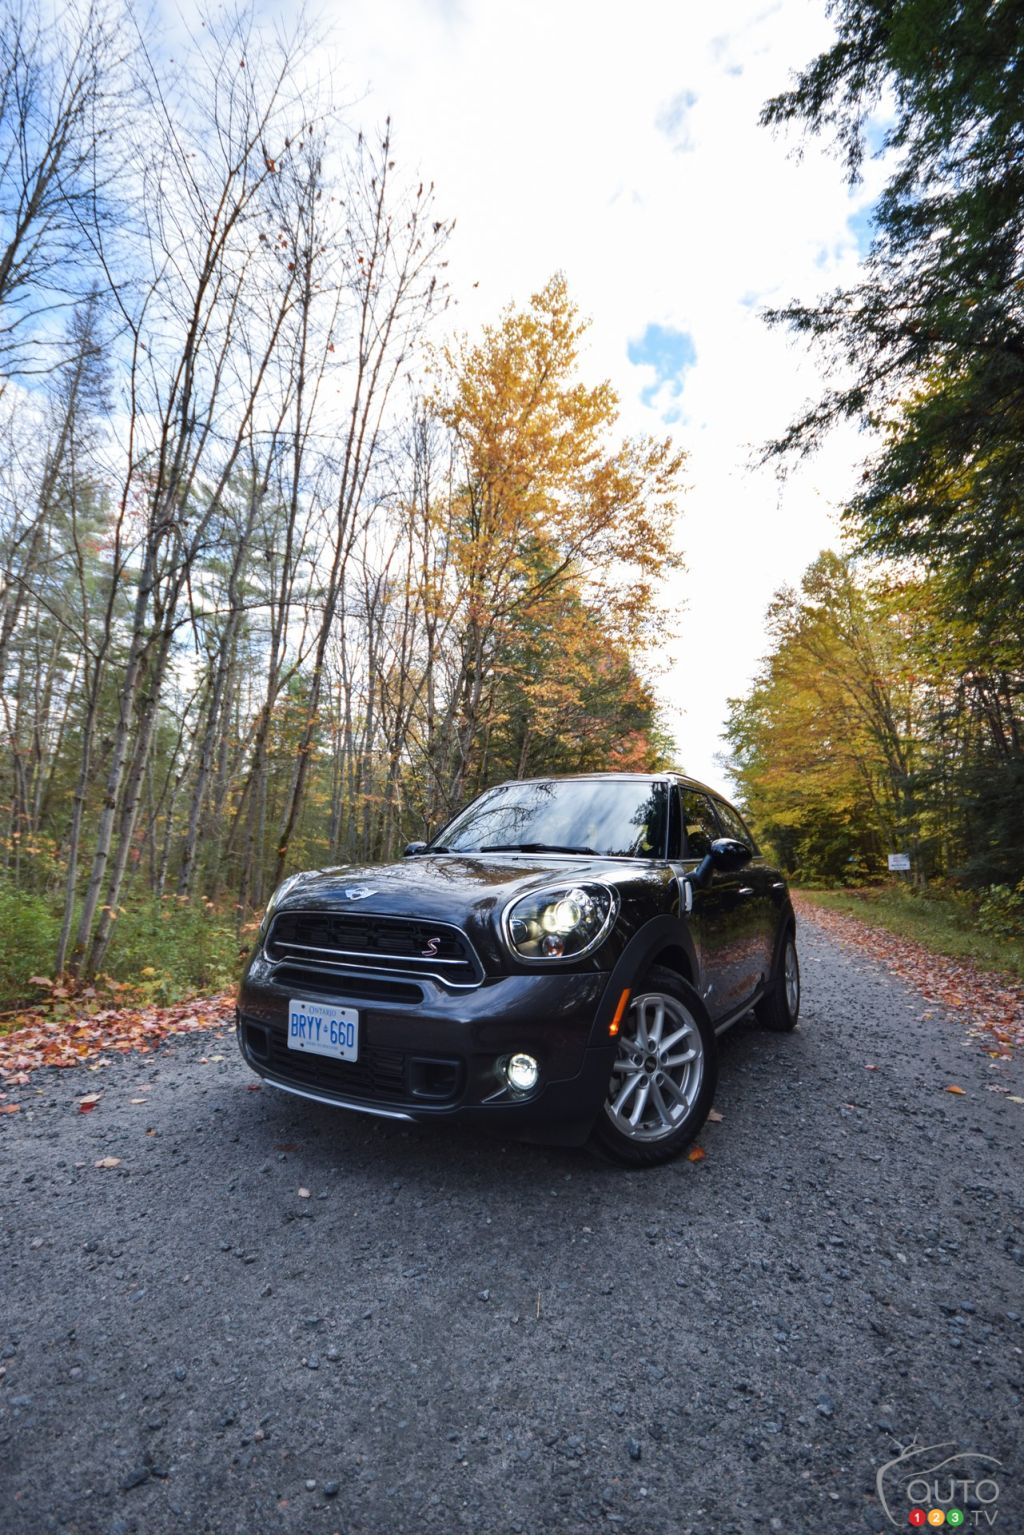 2015 MINI Cooper S Countryman ALL4 Review Editor's Review